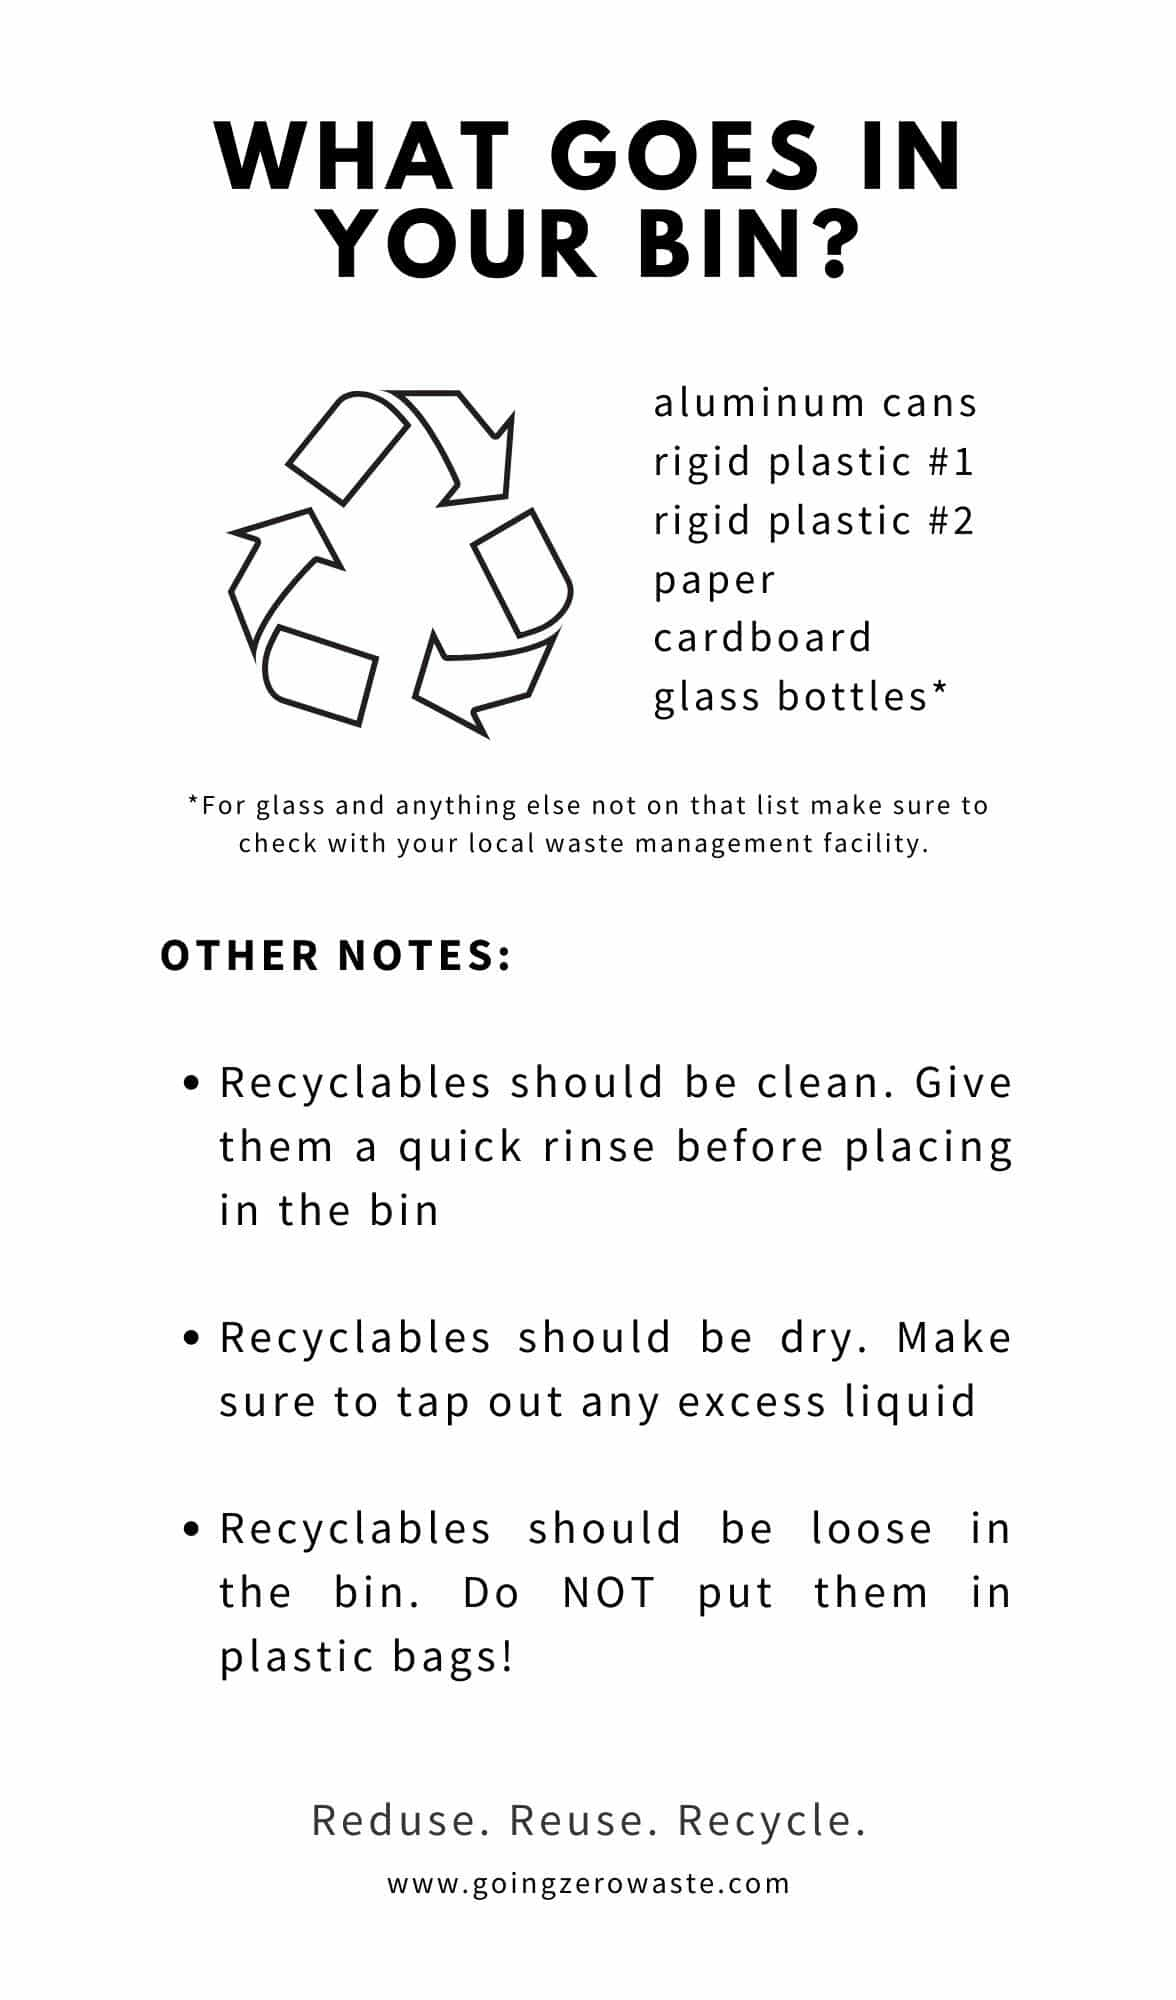 Recycling 101, 5 Easy Things Everyone Needs to Know about Recycling from www.goingzerowaste.com #recycling #recyclables #zerowaste #howtorecycle